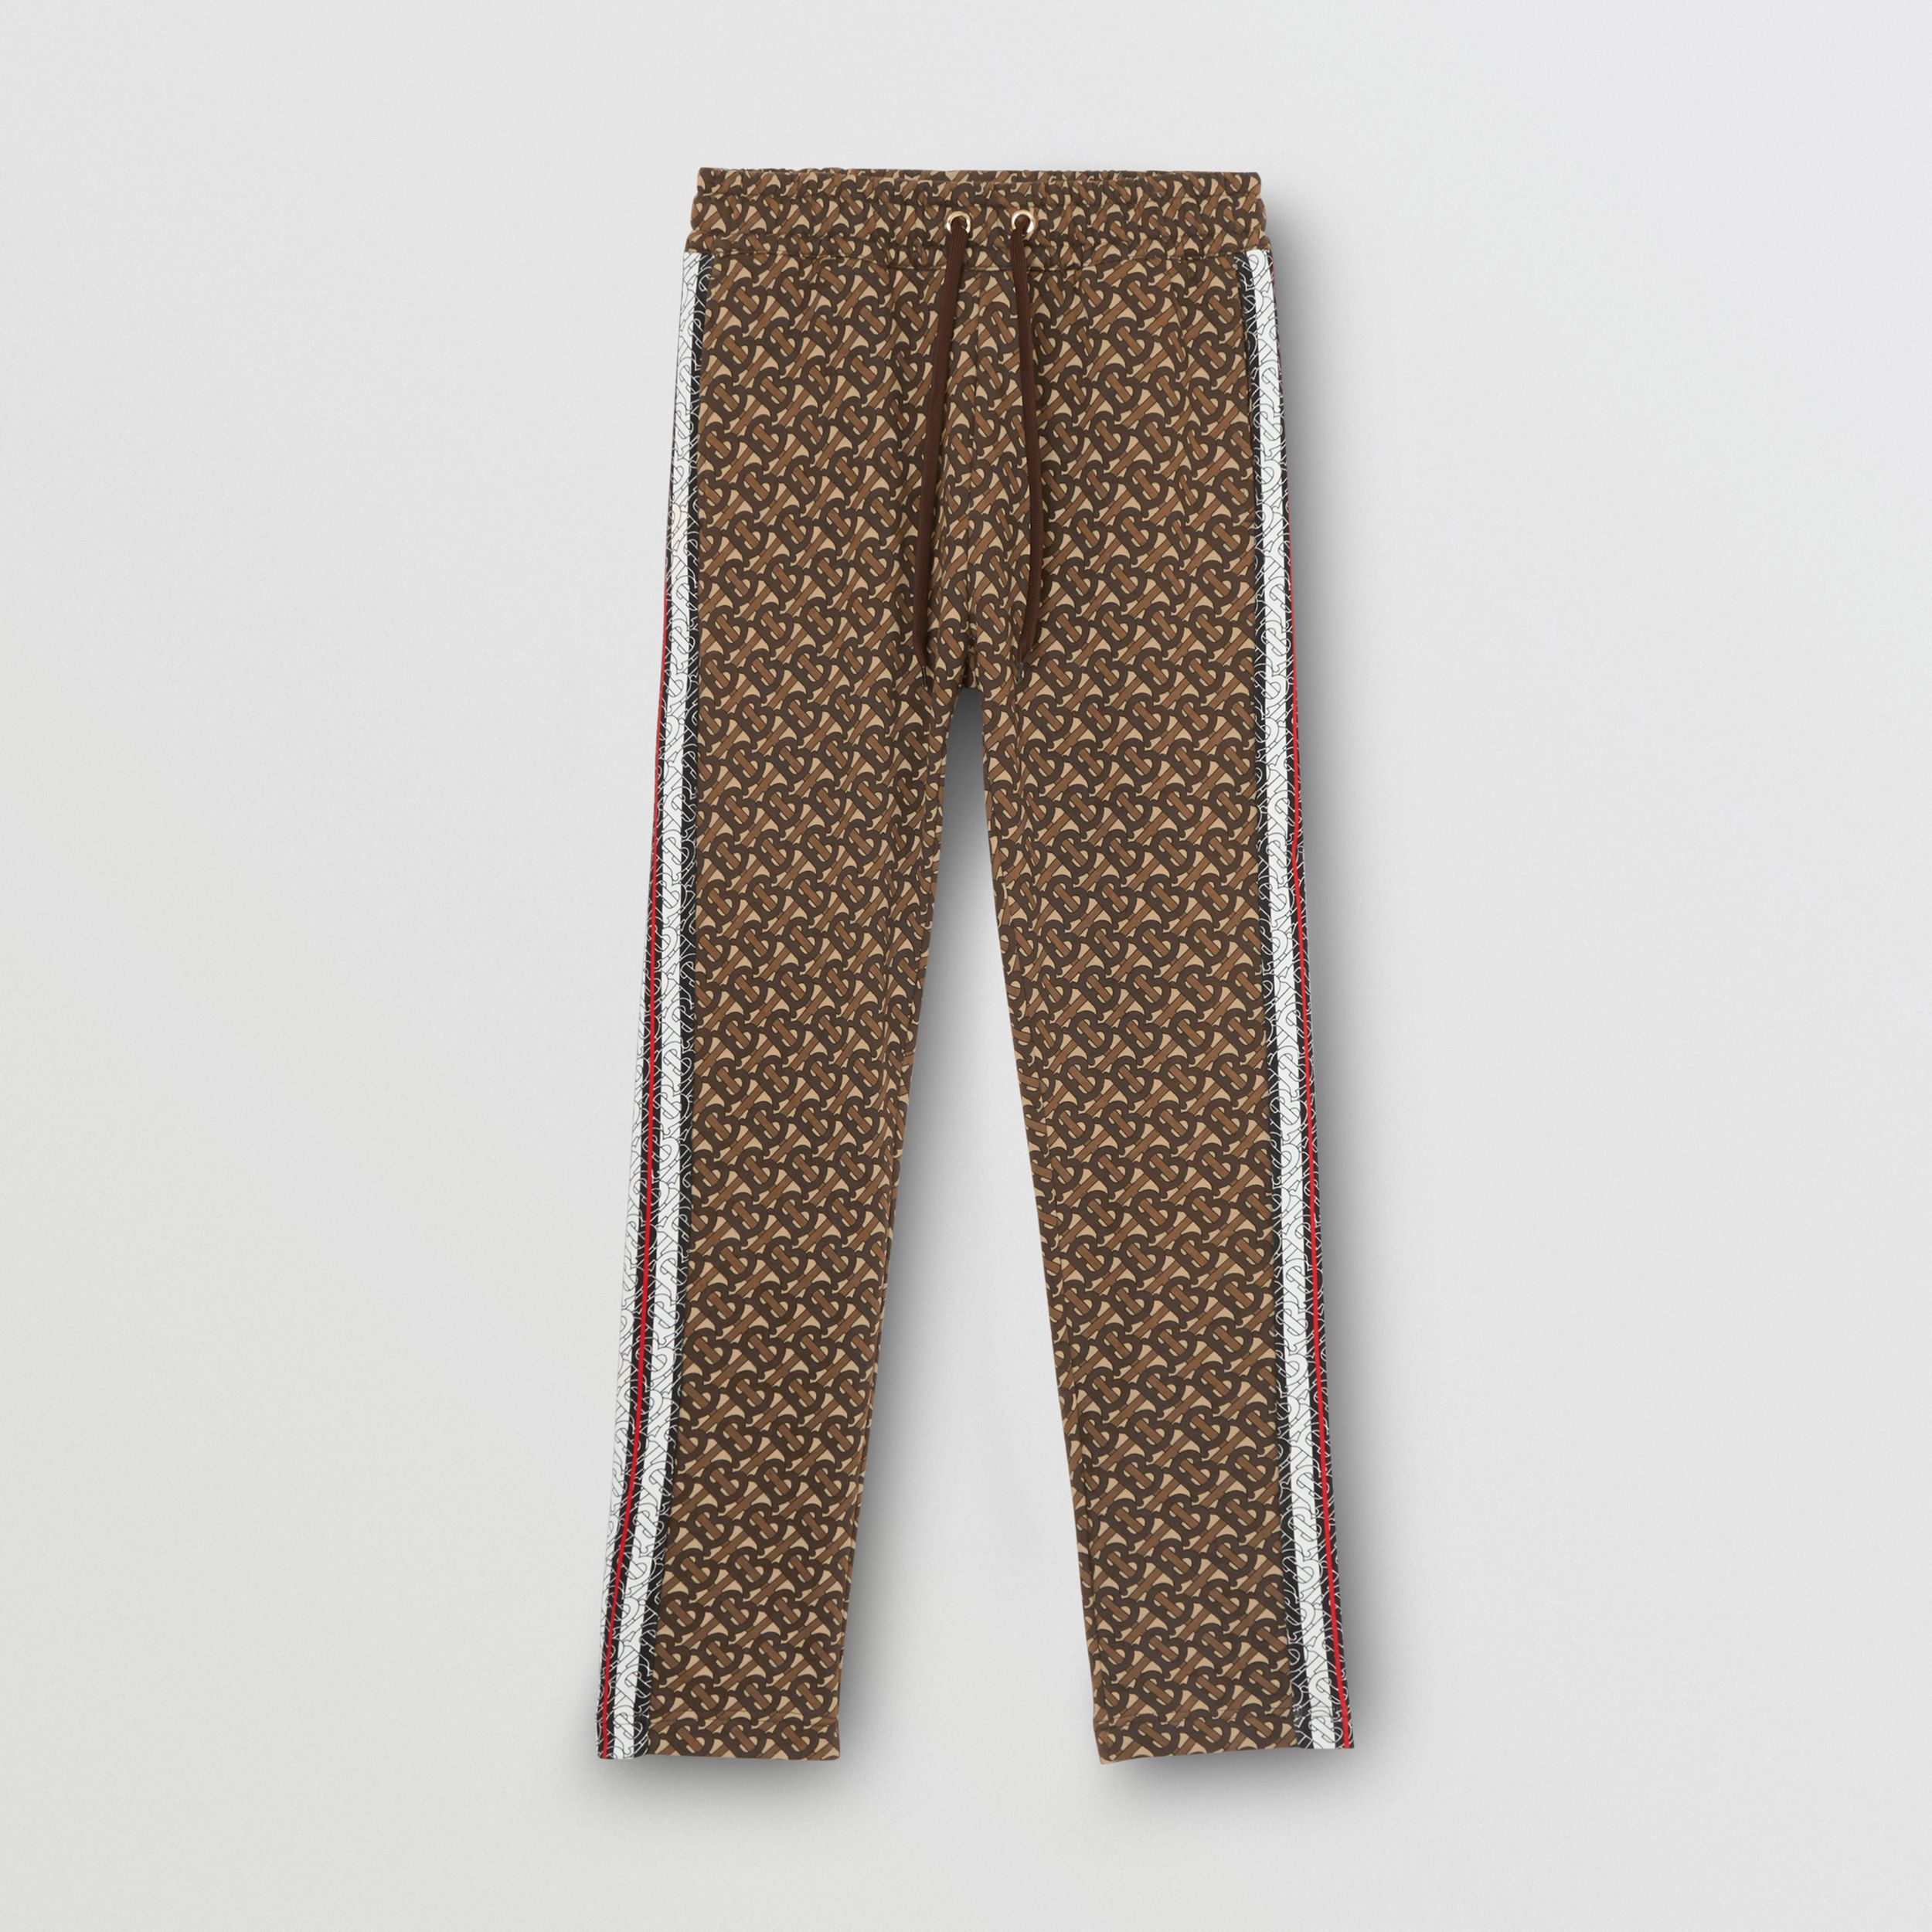 Monogram Stripe Print Cotton Jogging Pants in Bridle Brown - Women | Burberry - 3